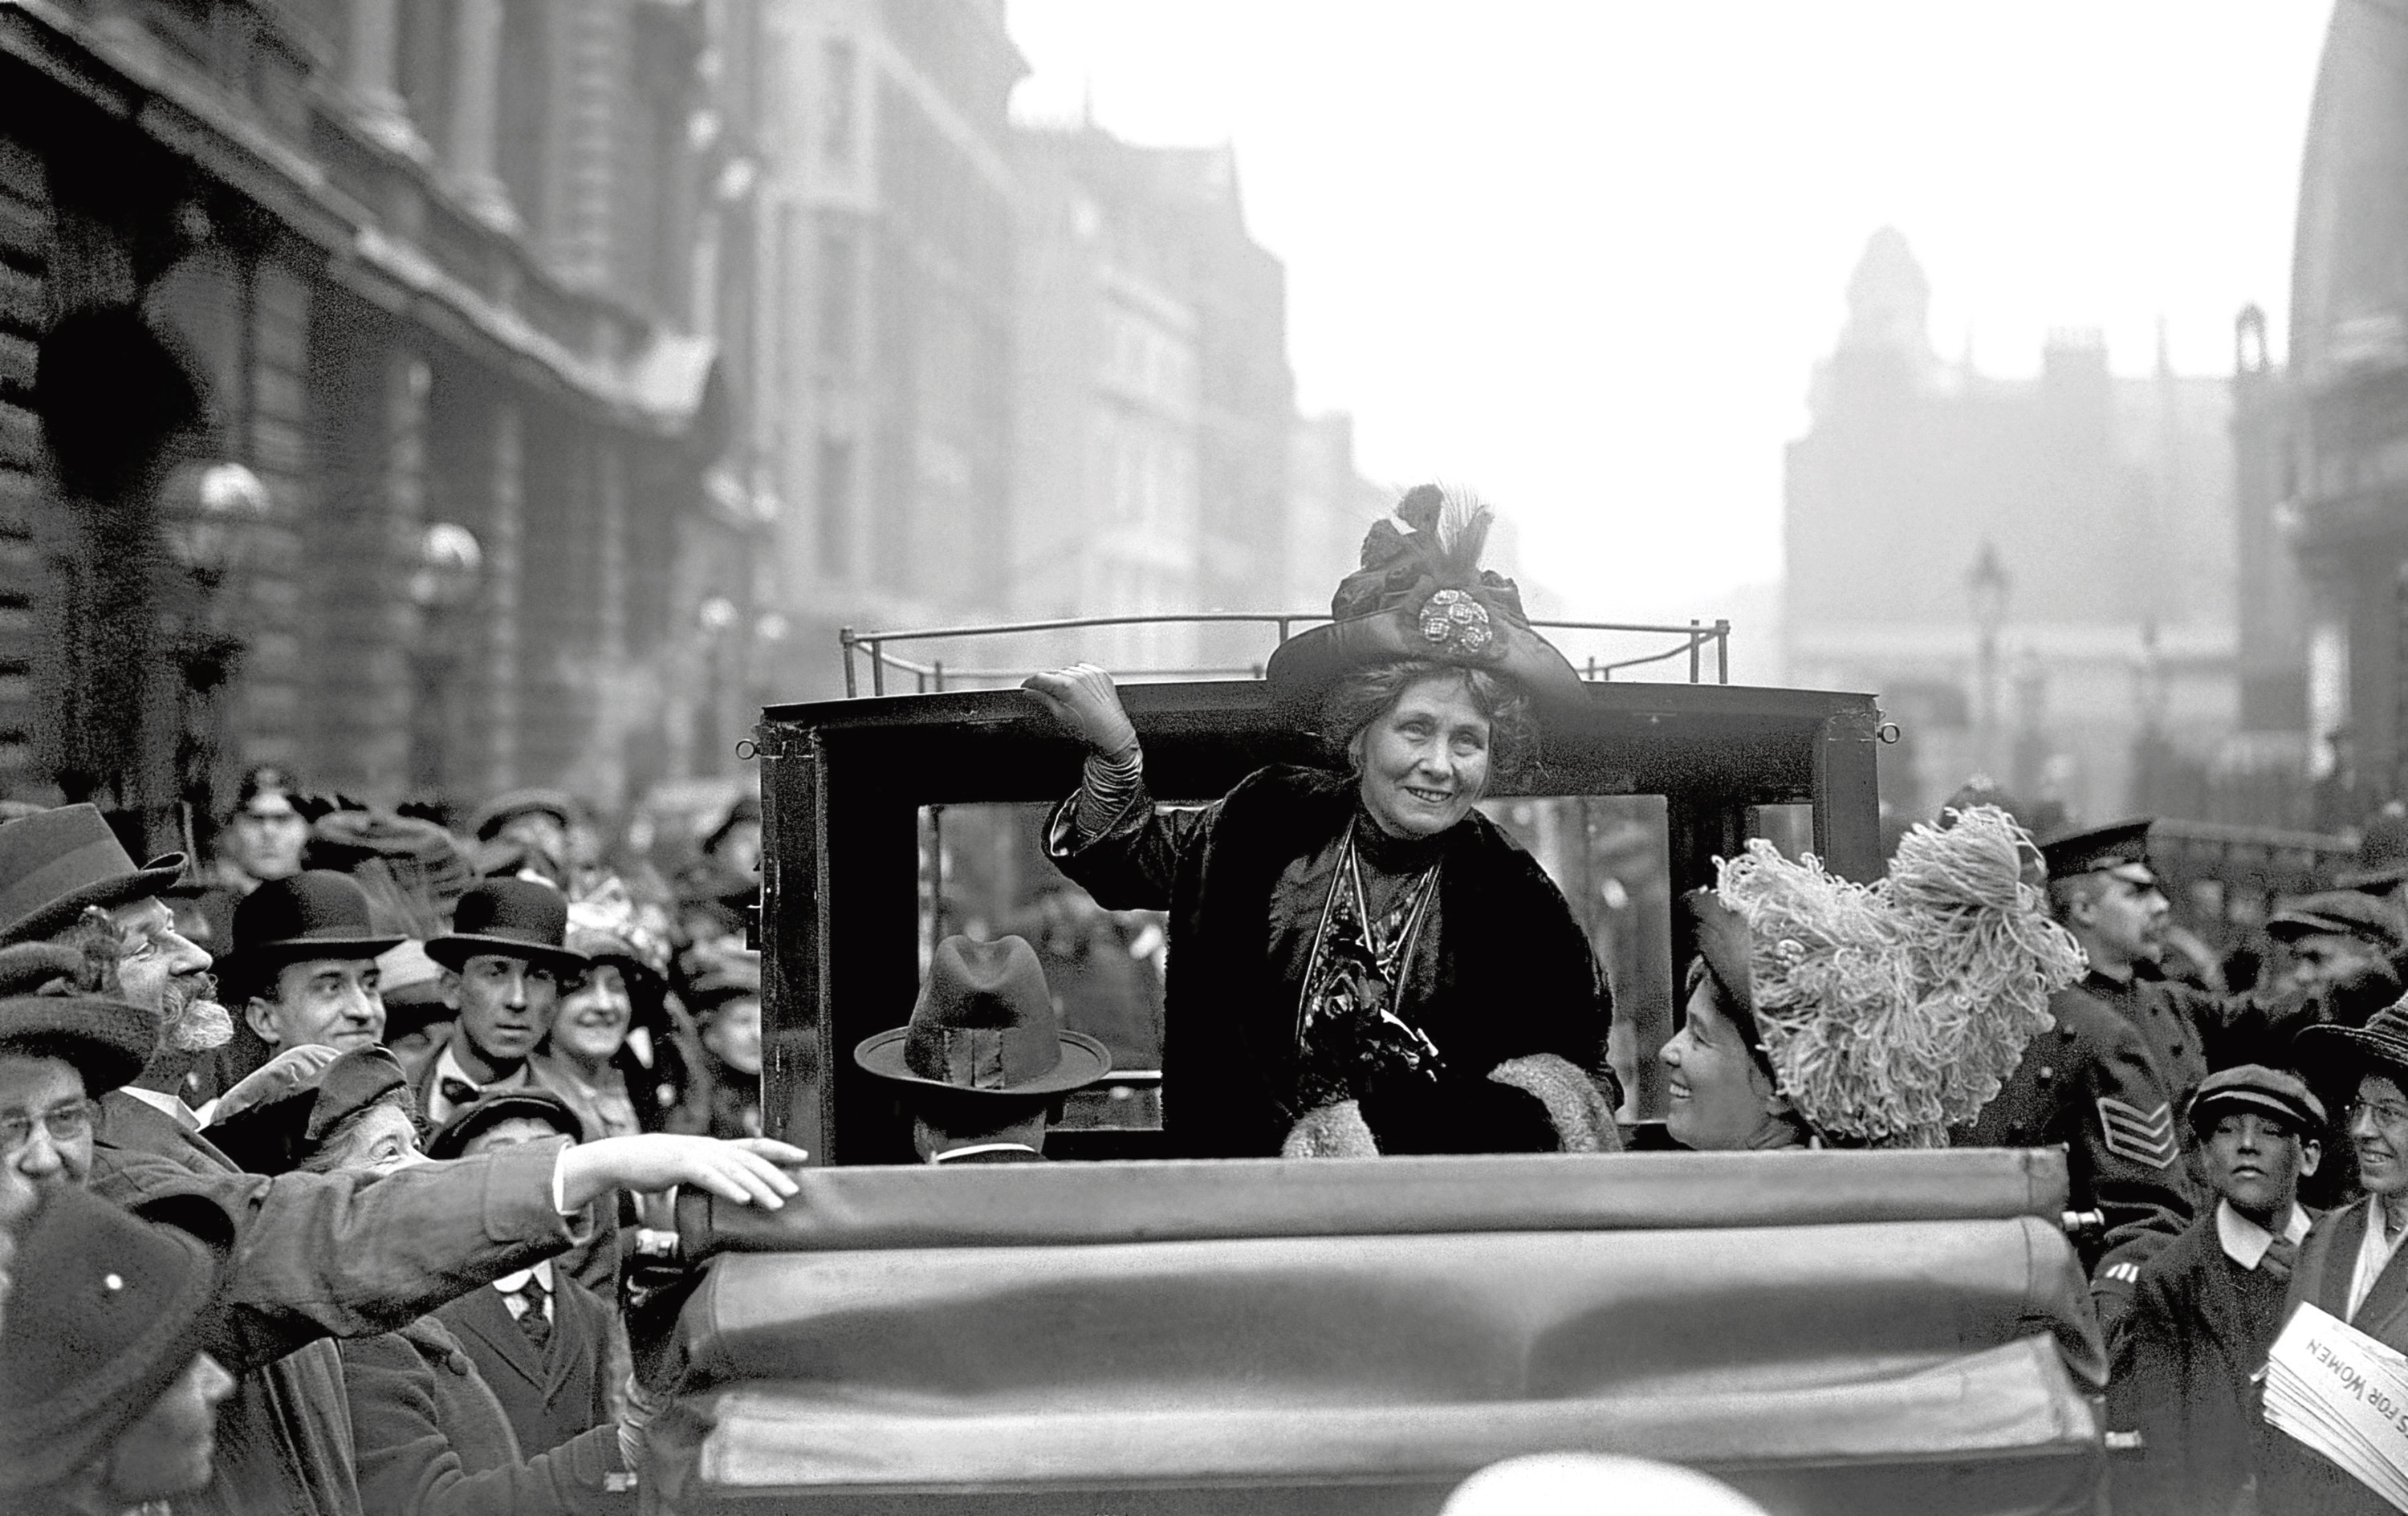 Undated file photo of founding member of the Women's Social and Political Union (WSPU) Emmeline Pankhurst leaving Bow Street after getting bail on a conspiracy charge in 1912. The Representation of the People Act, passed on February 6 1918, gave certain women over the age of 30 a vote and the right to stand for Parliament. PRESS ASSOCIATION Photo. Issue date: Saturday February 3, 2018. See PA story POLITICS Votes. Photo credit should read: PA Wire